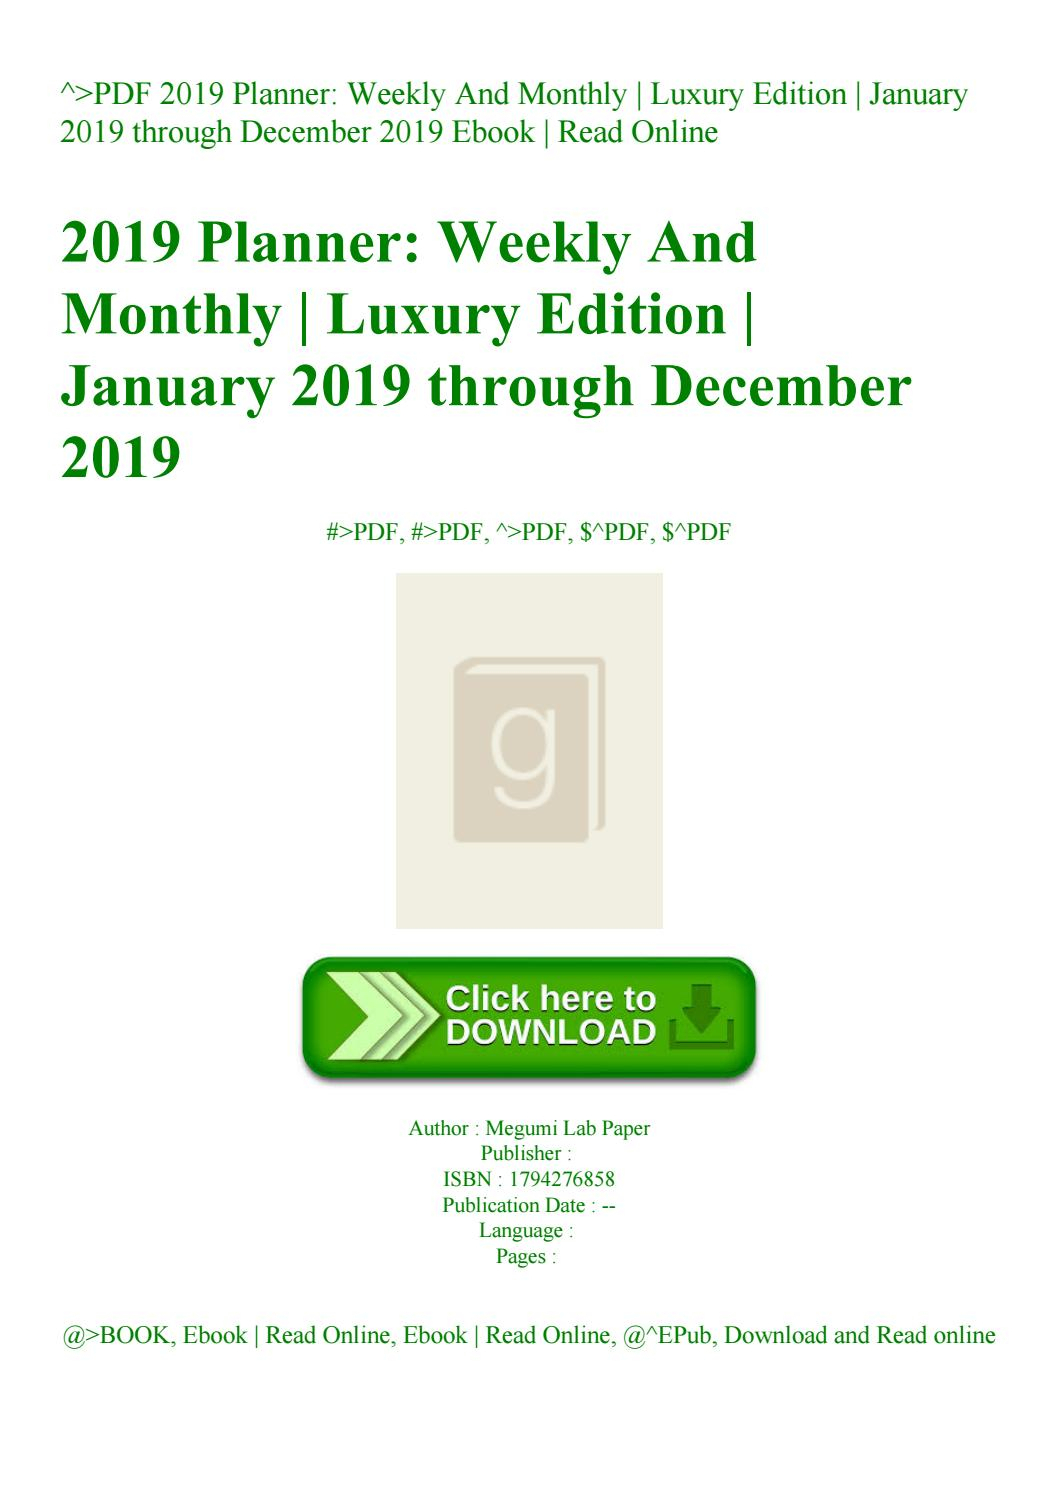 Pdf 2019 Planner Weekly And Monthly Luxury Edition January